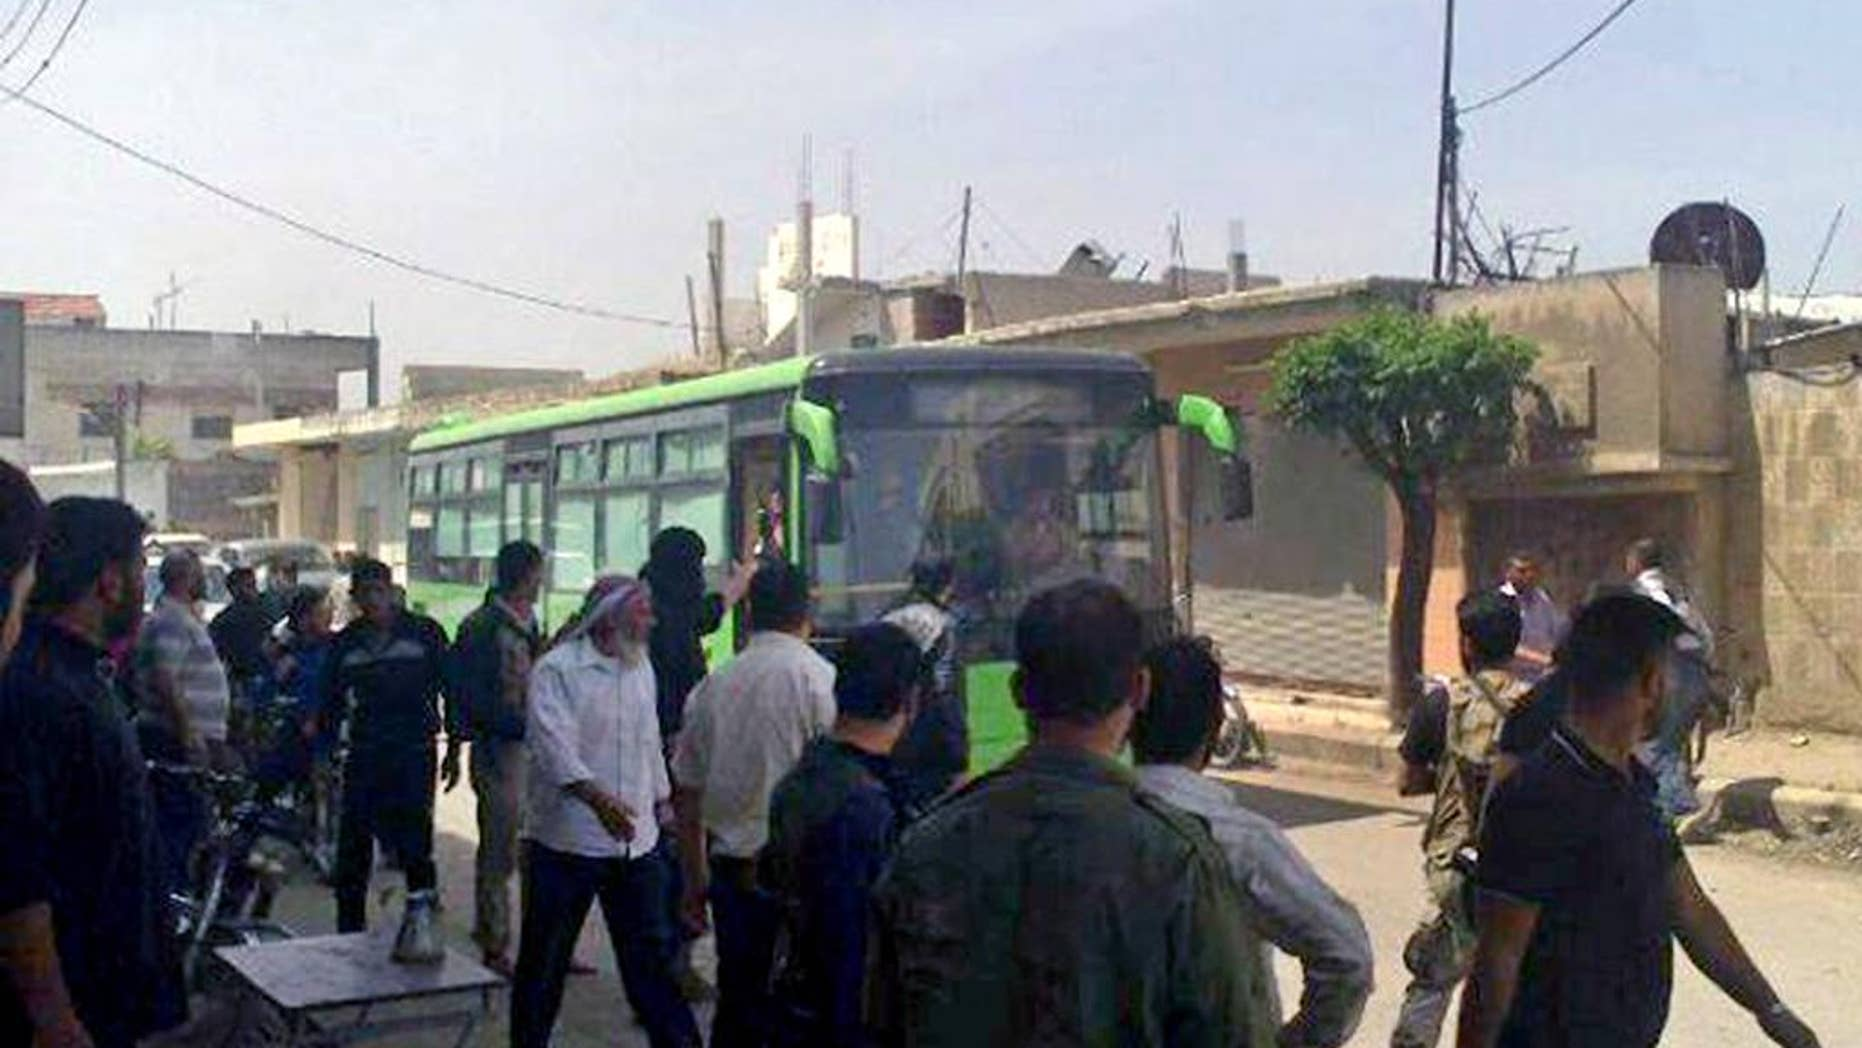 In this Wednesday, May 7, 2014 photo provided by the anti-government activist group Coordination Committee of Khalidiya Neighborhood in Homs, which has been authenticated based on its contents and other AP reporting, Free Syrian Army fighters board a bus leaving Homs, Syria. President Barack Obama may soon sign off on a project to train and equip moderate Syrian rebels, in an open move that would significantly boost U.S. support to forces who have been asking for three years for military help in their quest to oust President Bashar Assad, administration officials said Tuesday.The step, which could be announced as early as Wednesday, would send a limited number of American troops to Jordan to be part of a regional training mission that would instruct carefully vetted members of the Free Syrian Army on tactics, including counterterrorism operations, the officials said. They said Obama has not yet given final approval for the initiative, and that there is still internal discussion about its merits and potential risks.  (AP Photo/The Coordination Committee of Khalidiya Neighborhood in Homs)